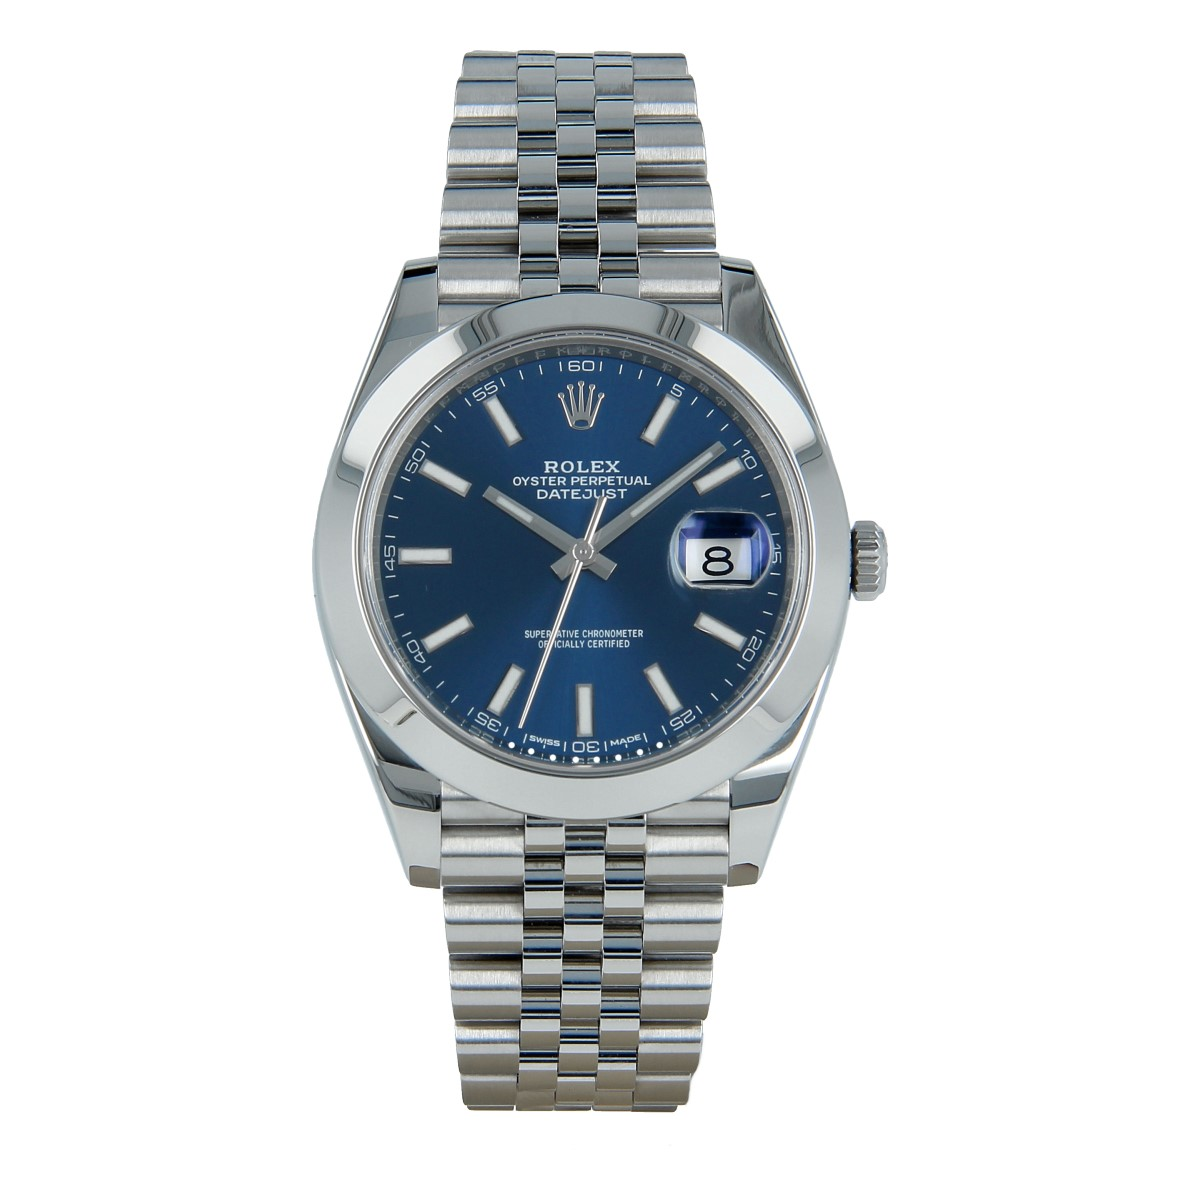 Rolex Datejust 41 mm 126300 Blue Dial | Buy second-hand Rolex watch